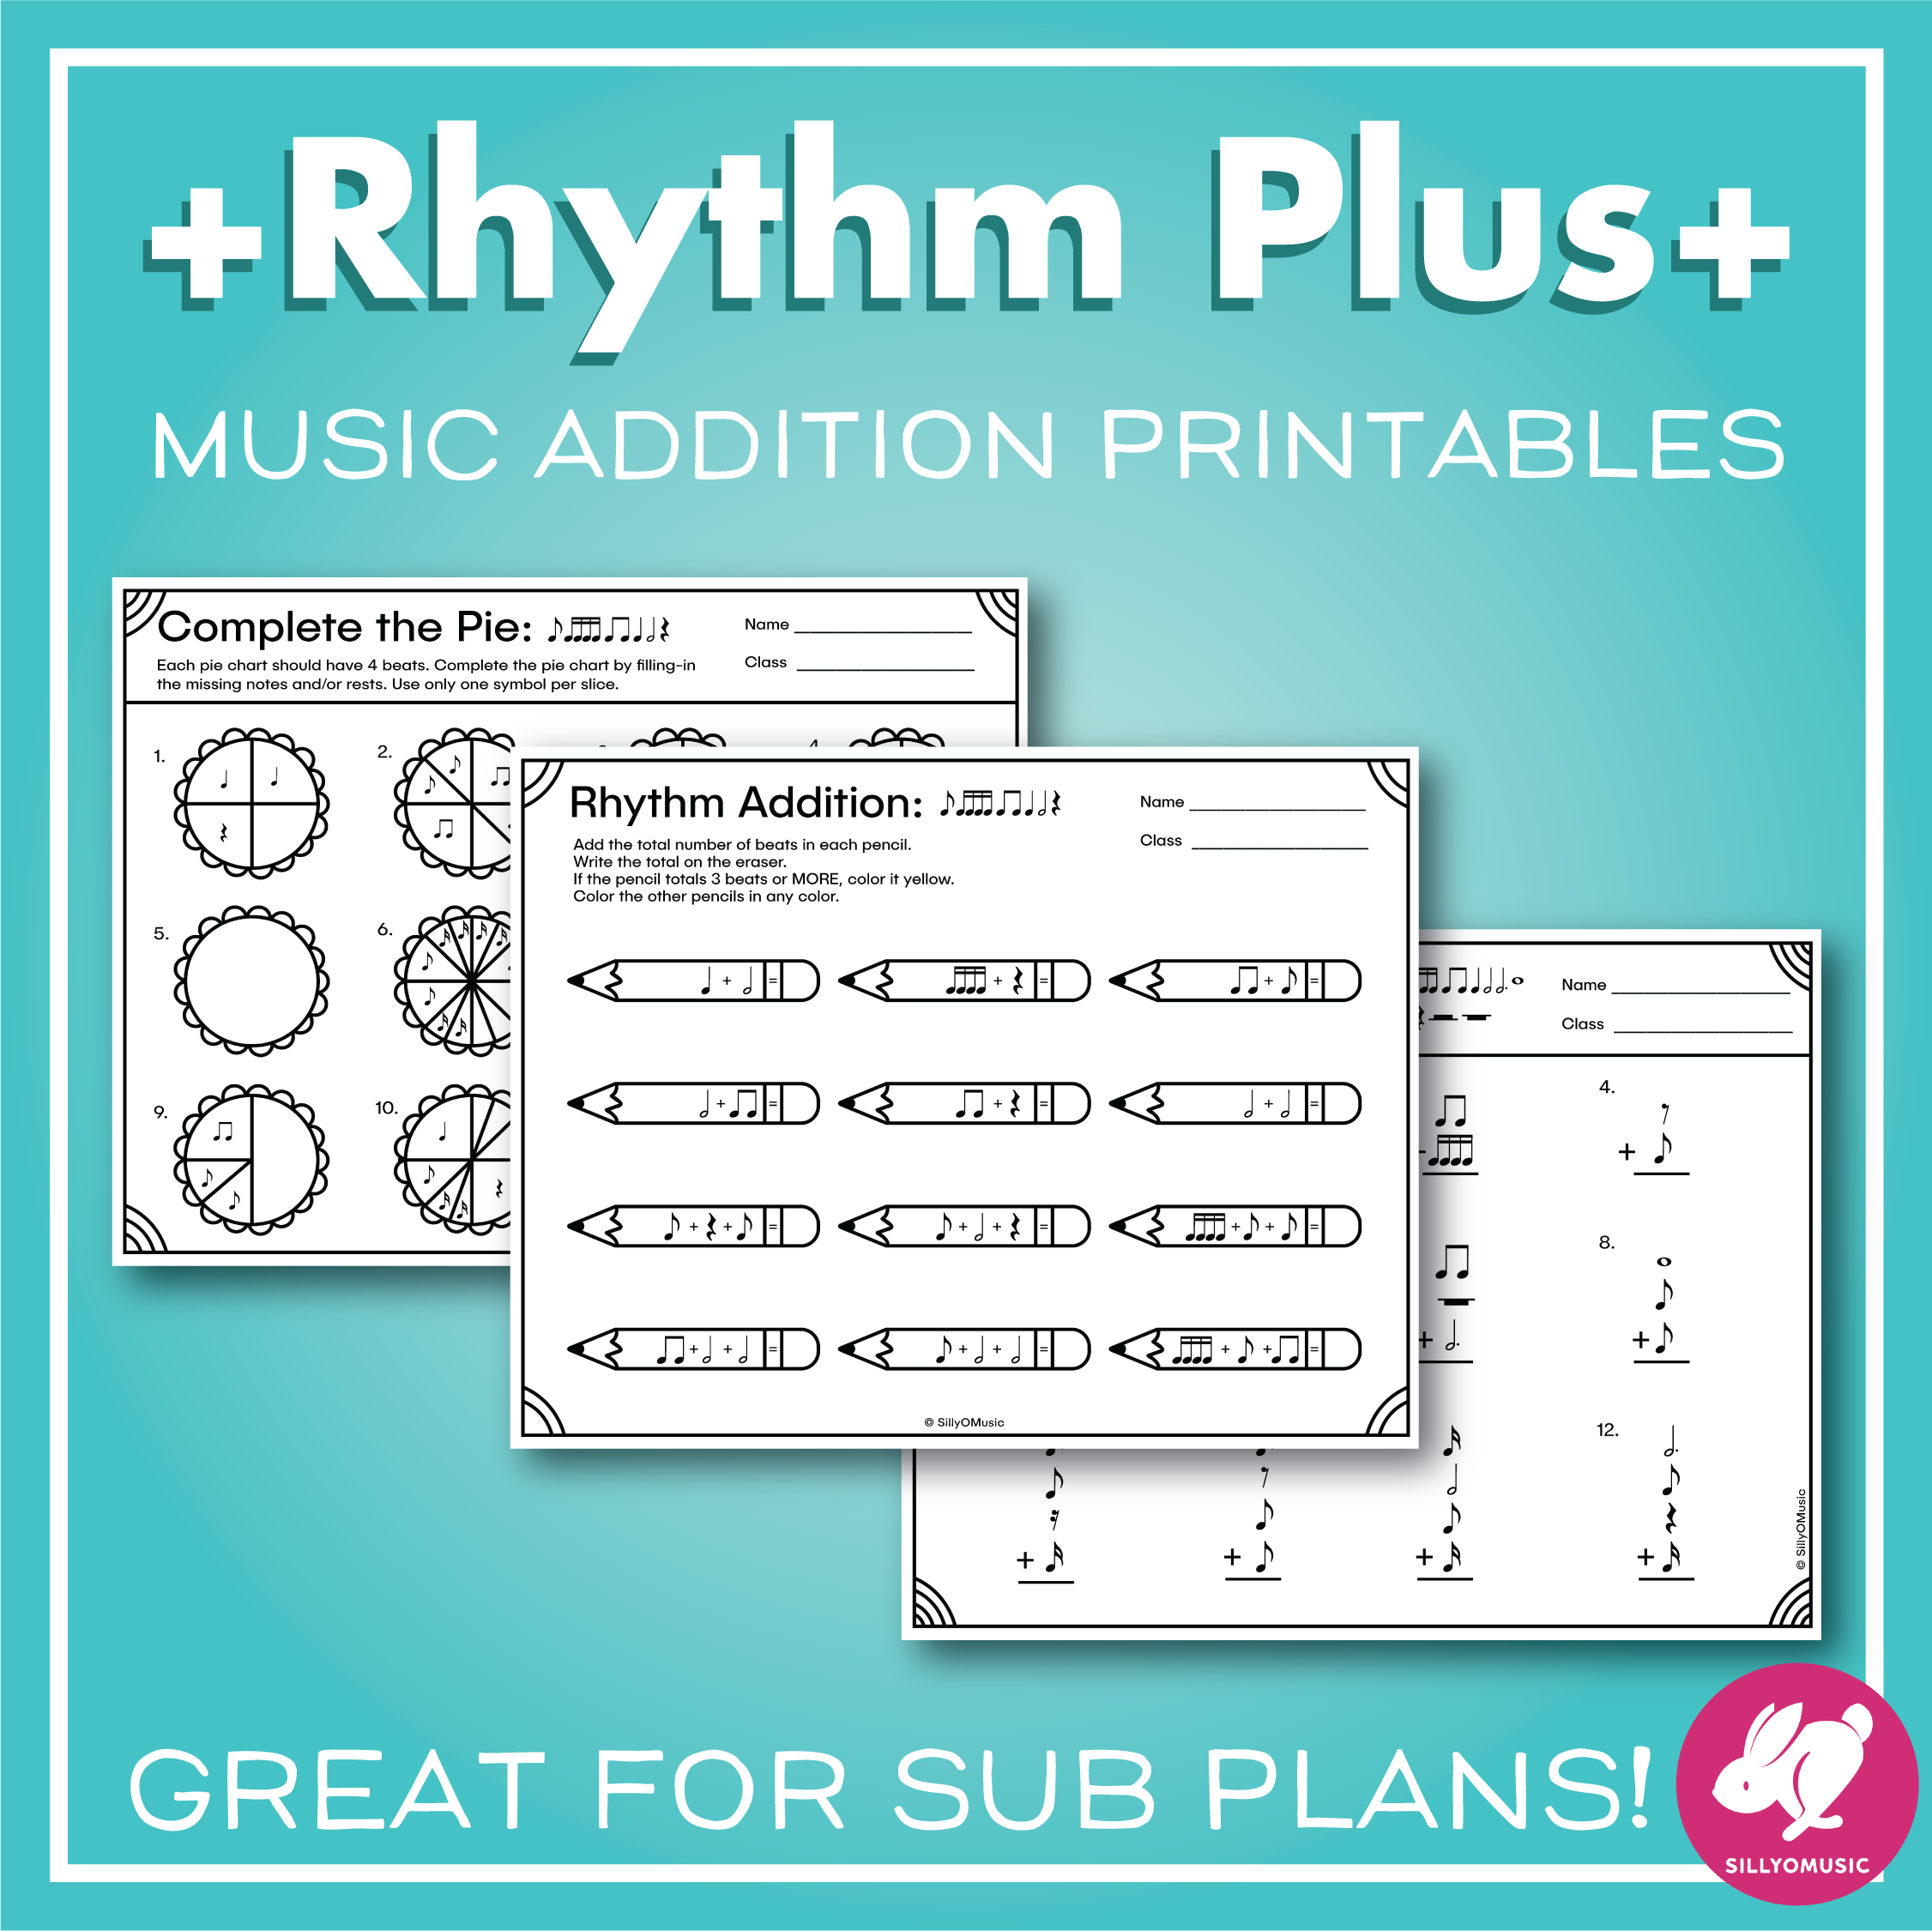 Rhythm Addition Music Math Worksheets From Sillyomusic